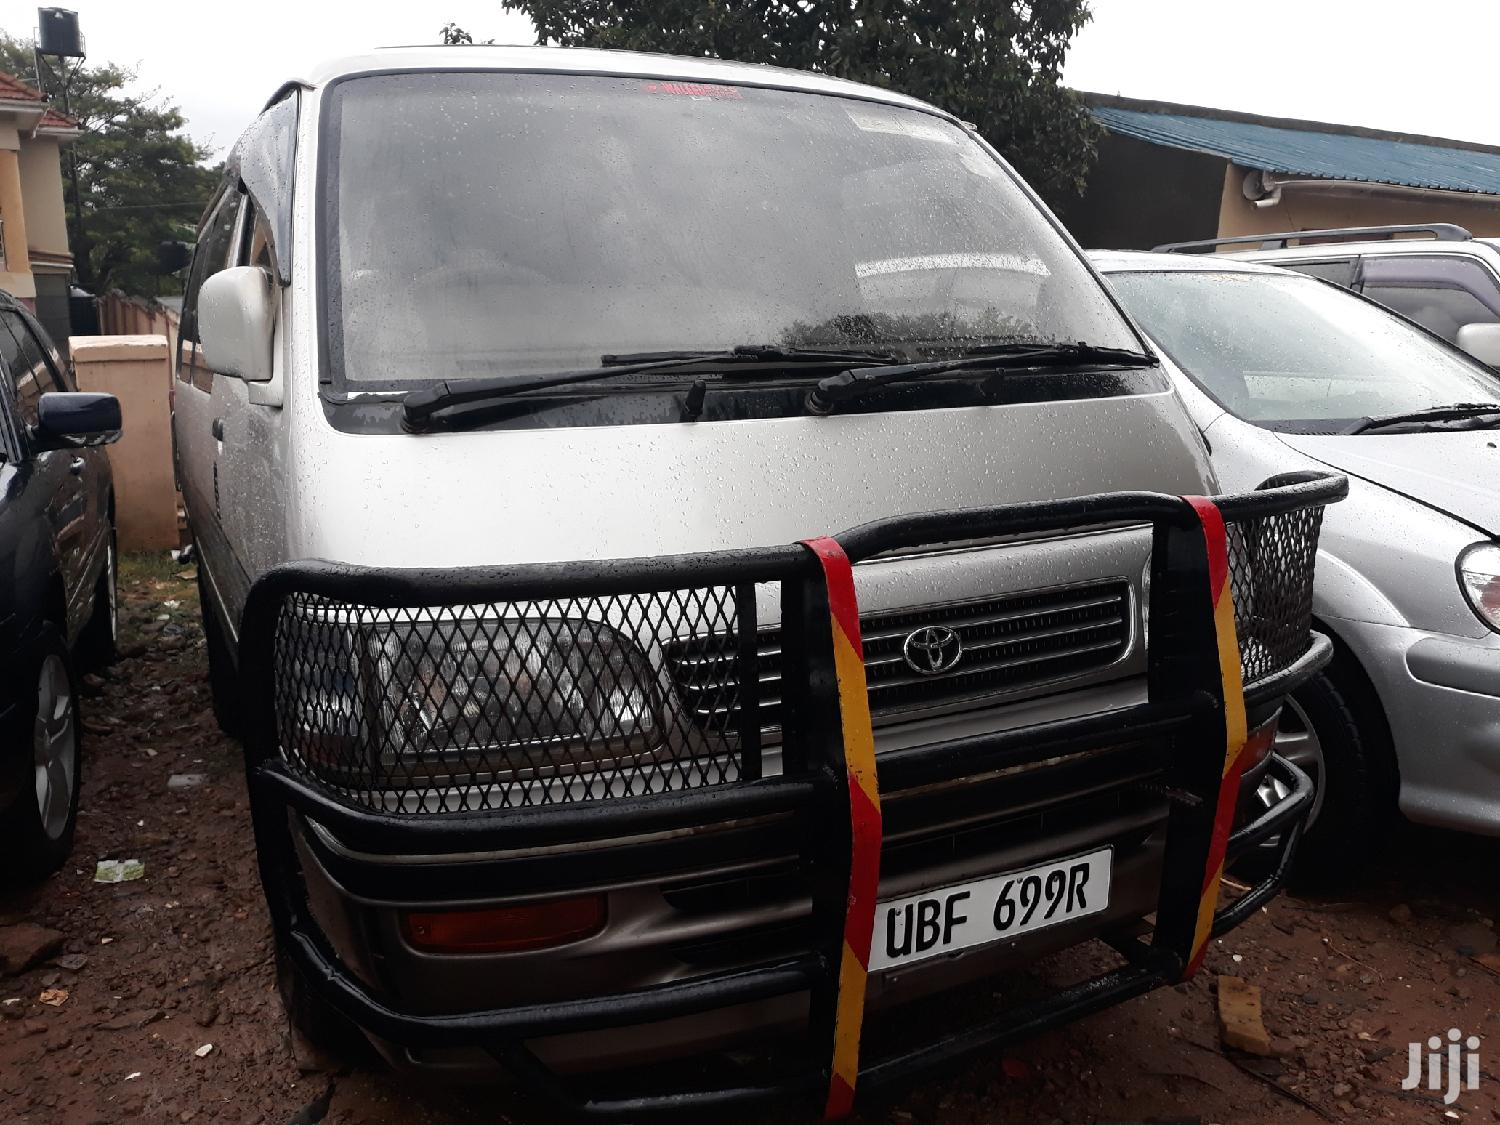 Toyota HiAce 1998 | Buses & Microbuses for sale in Kampala, Central Region, Uganda